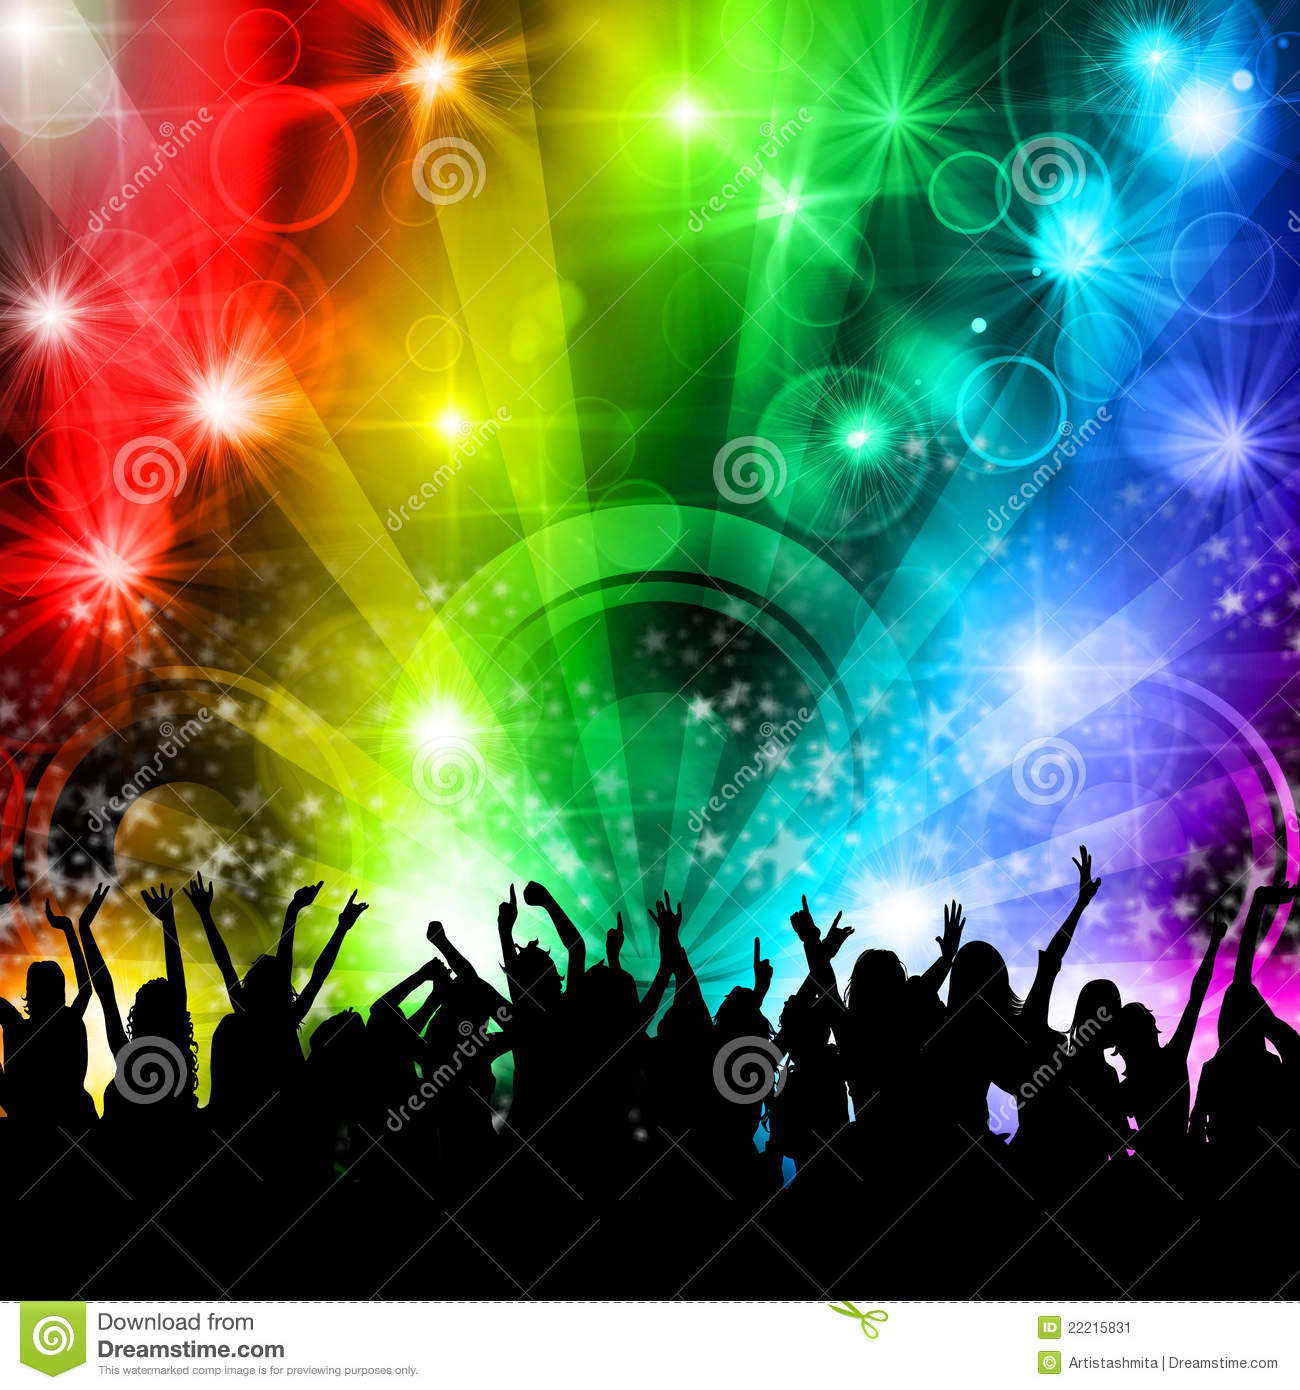 dance map with Stock Image Dj Disco Music Party People Image22215831 on Game Of Thrones Jason Momoa Audition Tape besides Gold Reef City moreover Stock Image Dj Disco Music Party People Image22215831 in addition scpdca besides The Altamont Stones Concert And Murder.